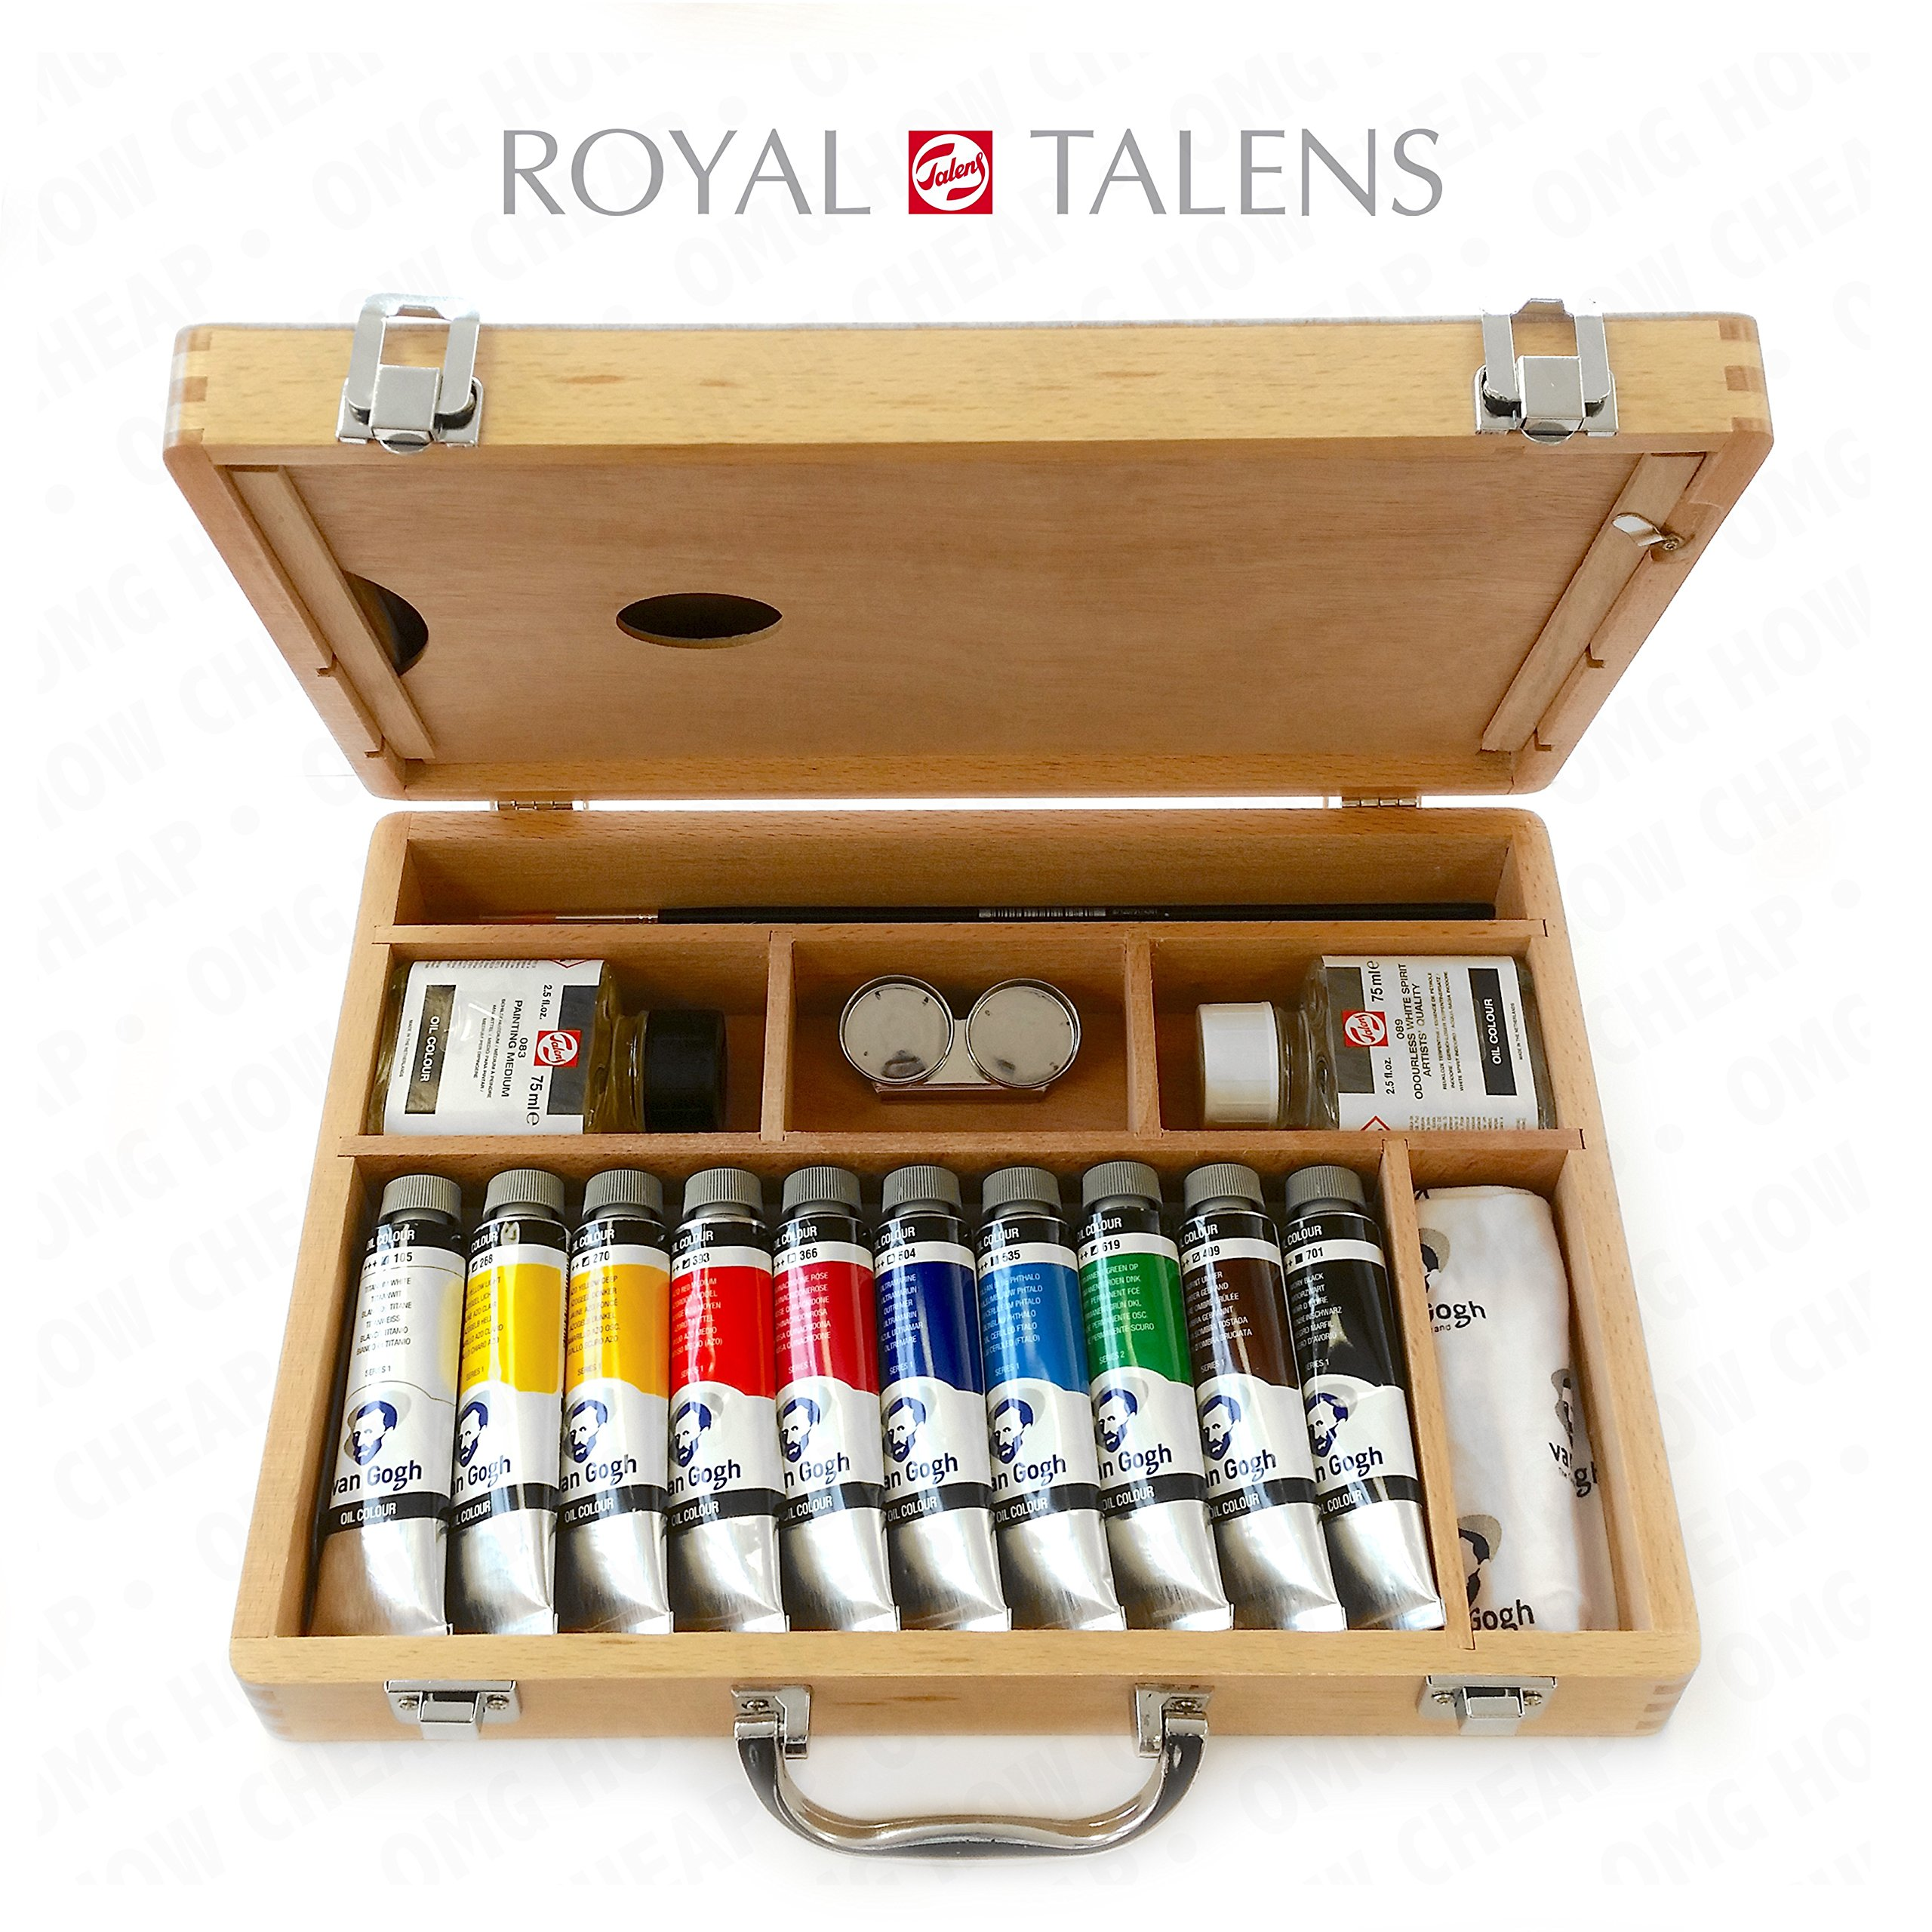 Royal Talens - Van Gogh Oil Colour Art Set in Premium Wooden Case - With Paints, Palette, and Brushes